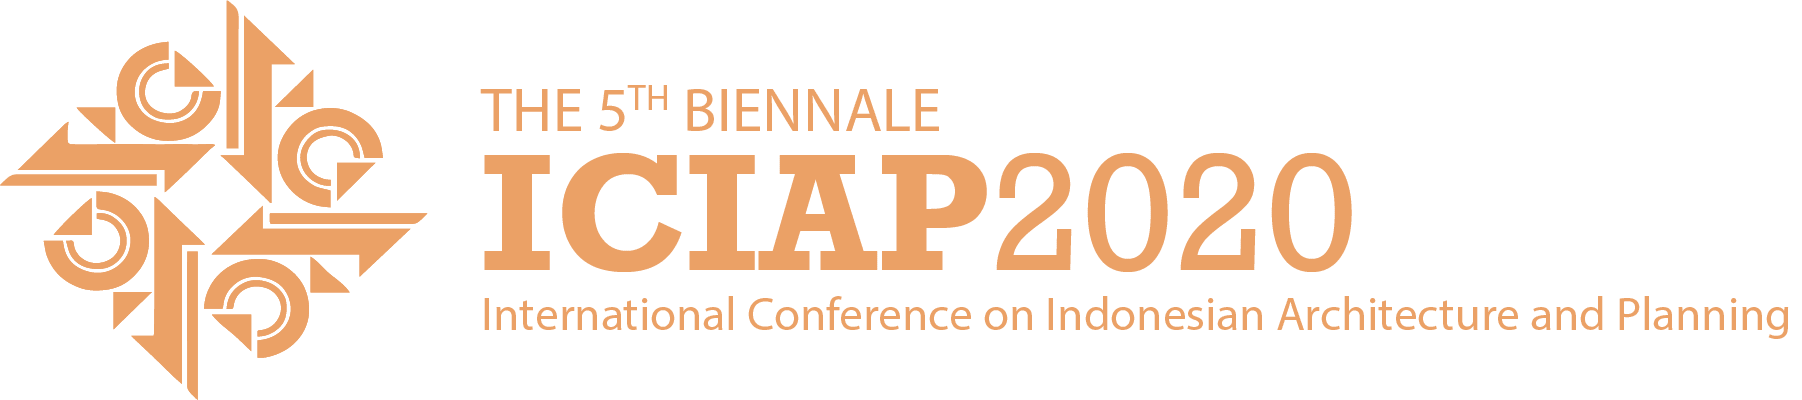 5th ICIAP 2020